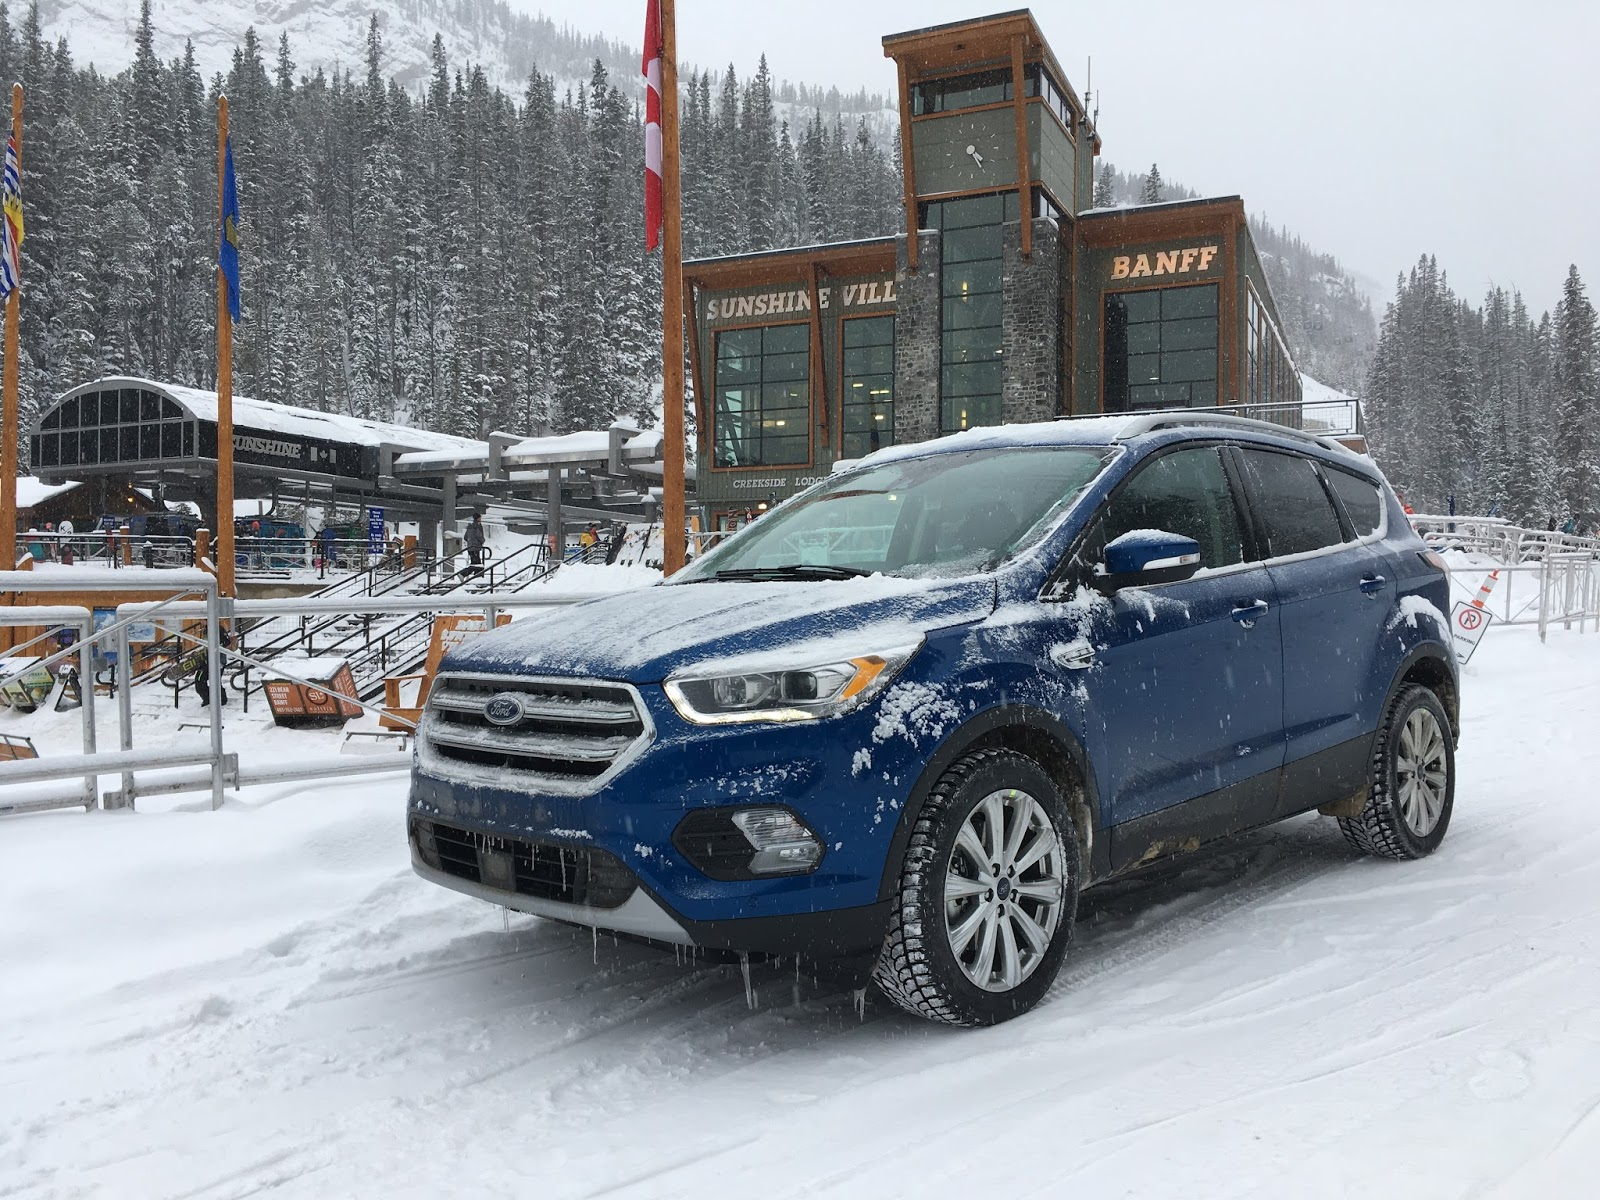 I knew as soon we were told the 2017 ford escape titanium would be available to us for the better part of the unseasonably cold and snowy days in early